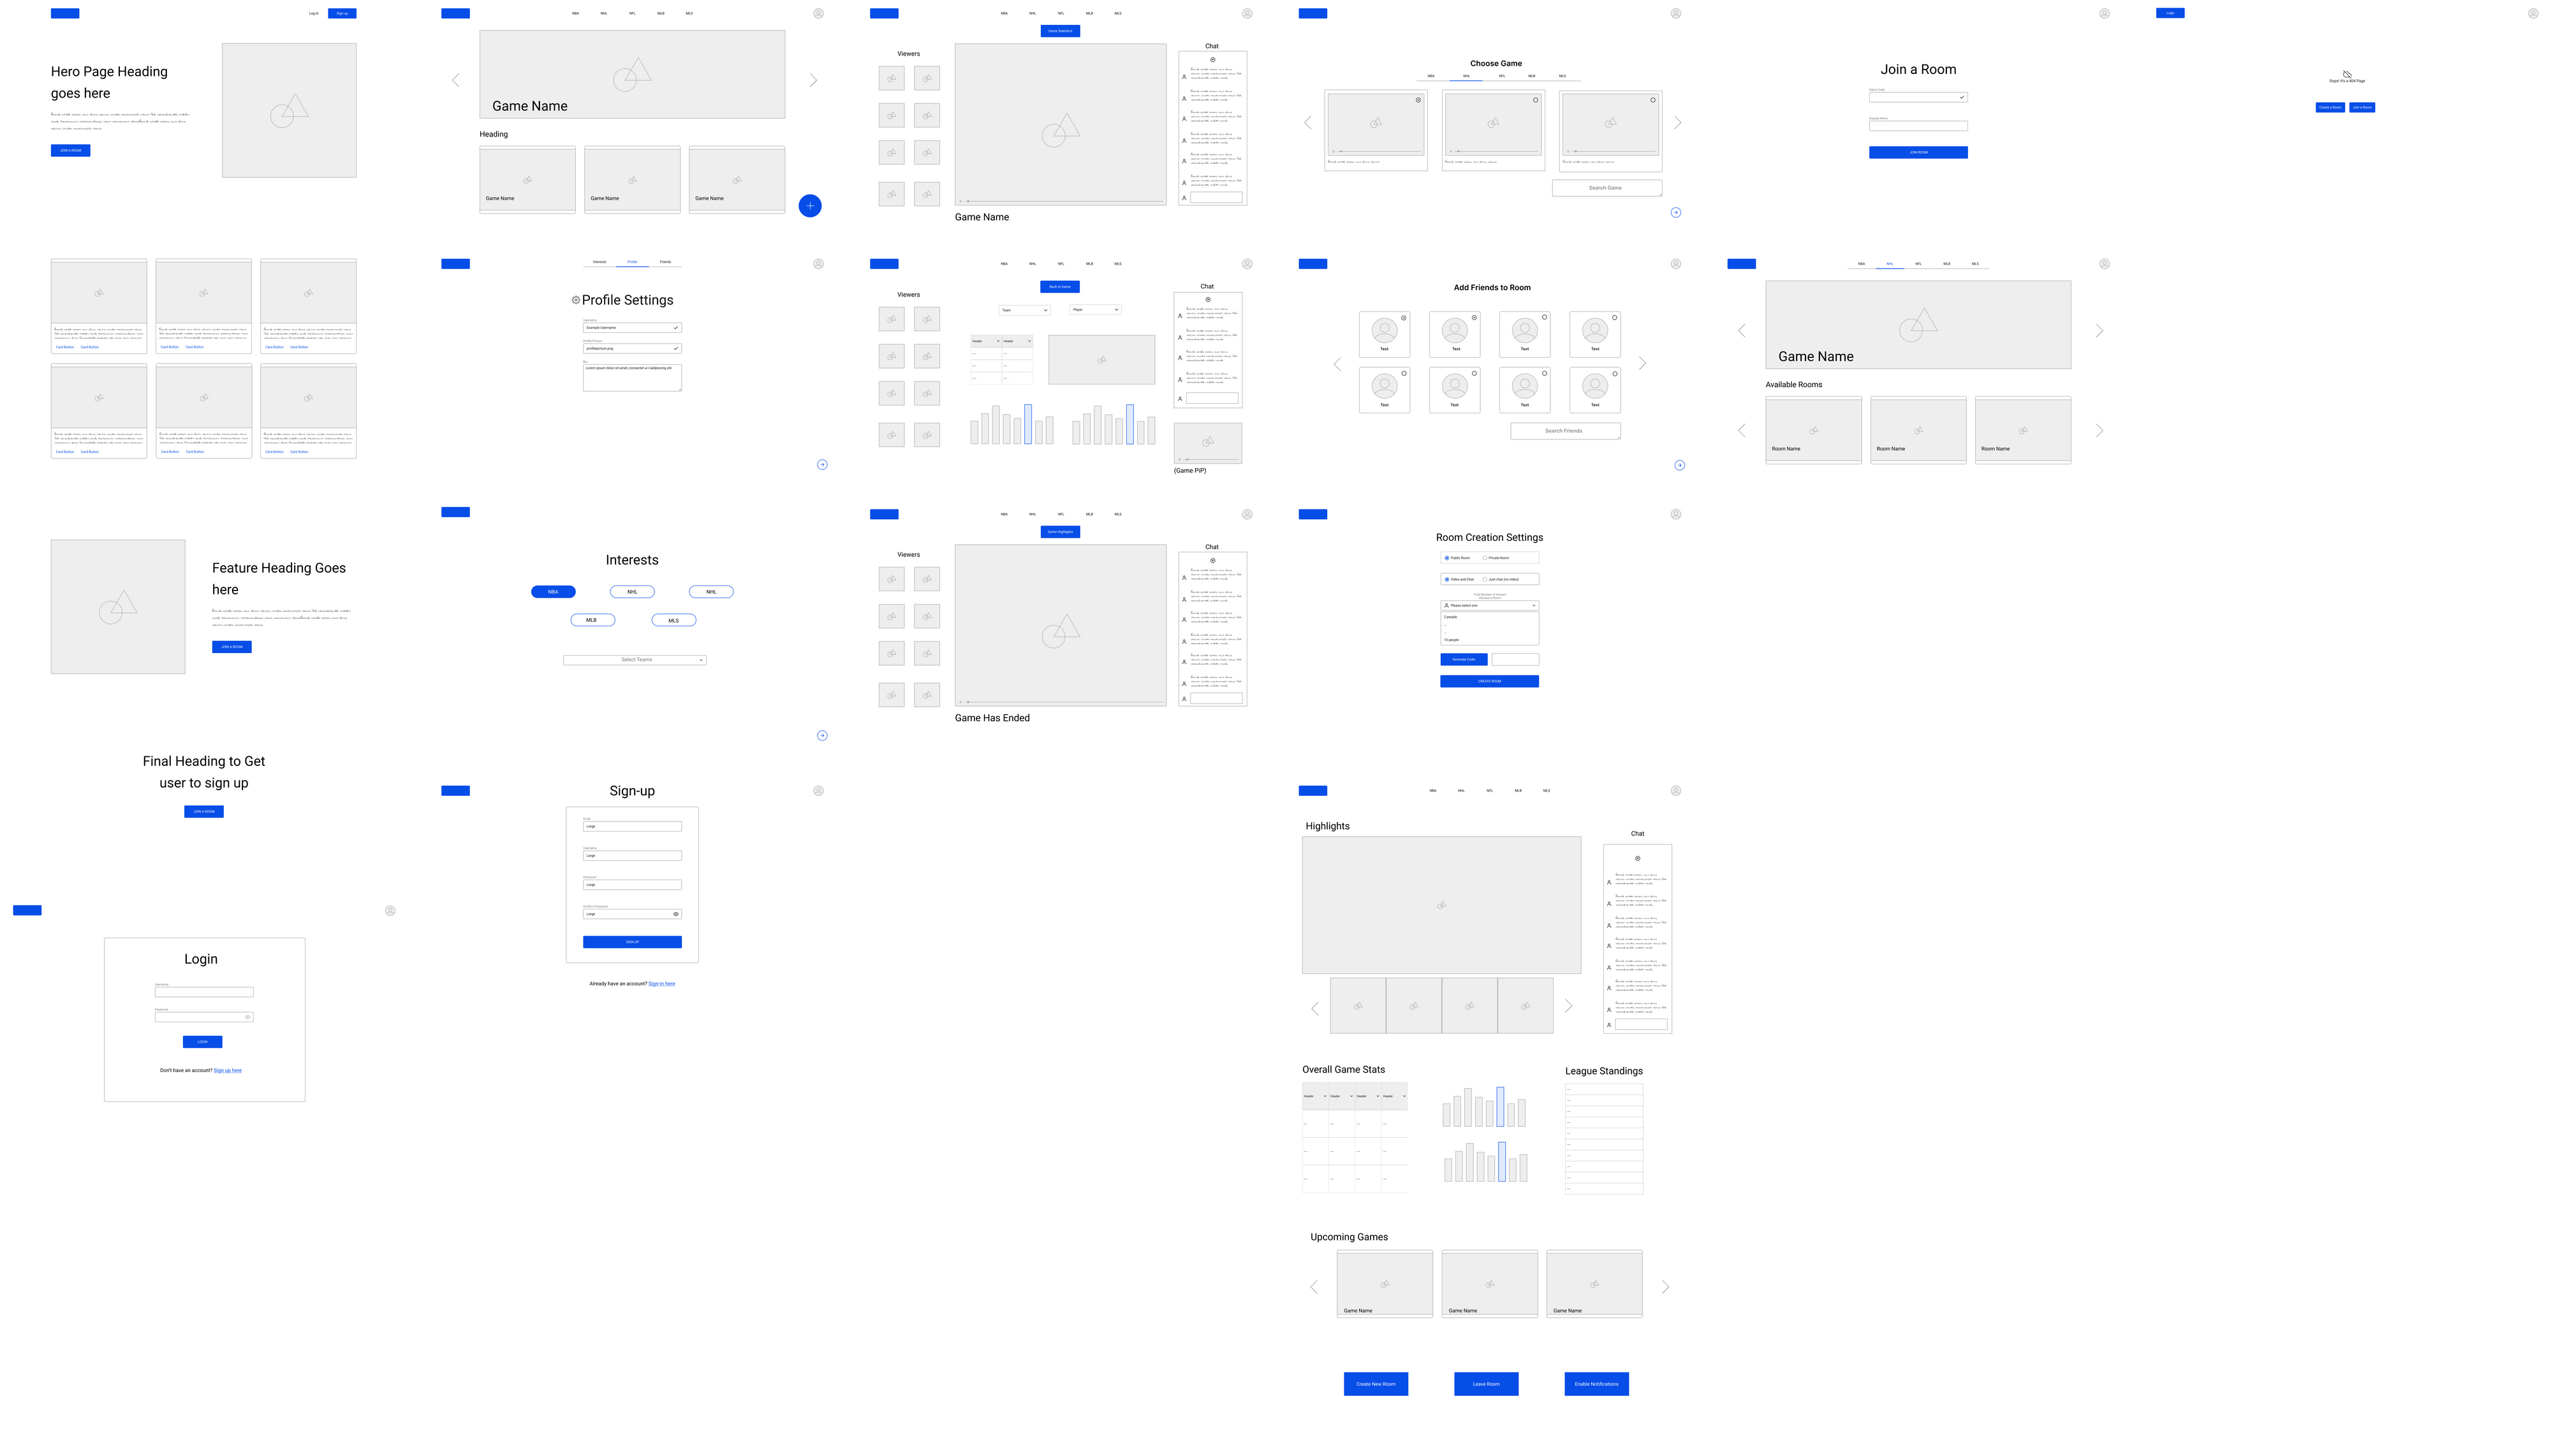 The wireframes we created collaboratively in Figma.